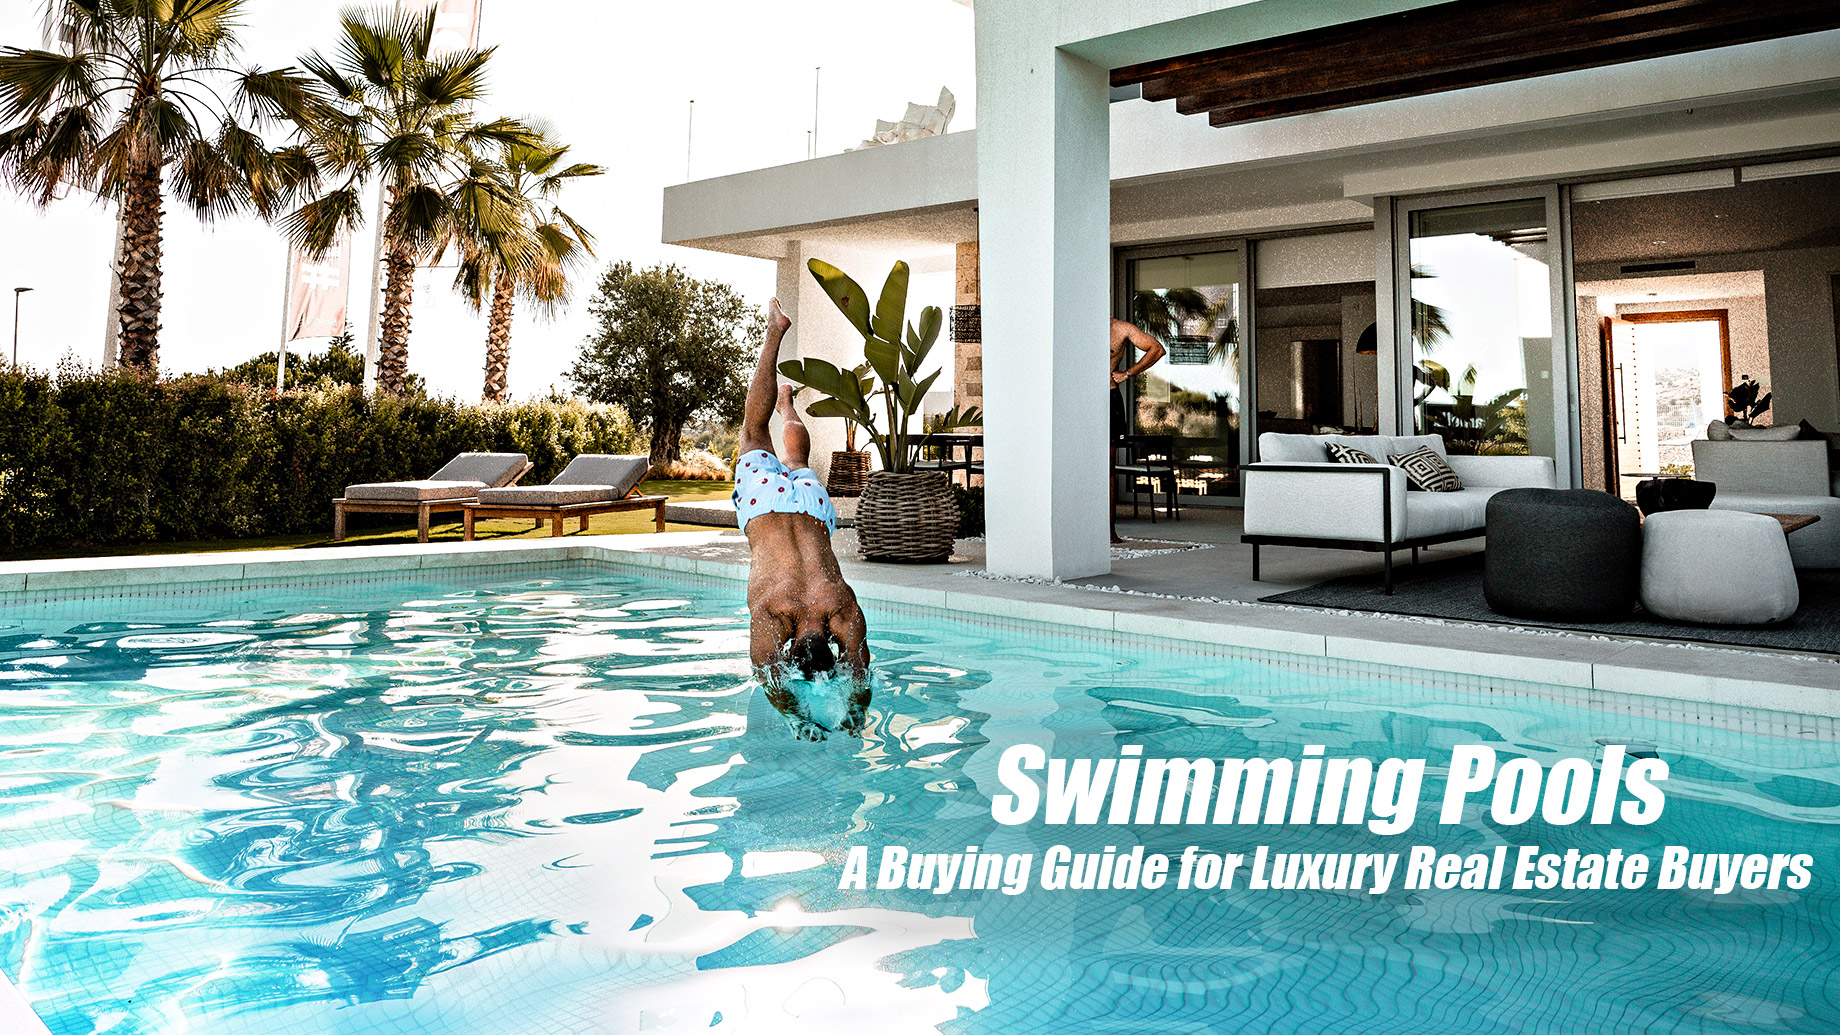 Swimming Pools - A Buying Guide for Luxury Real Estate Buyers